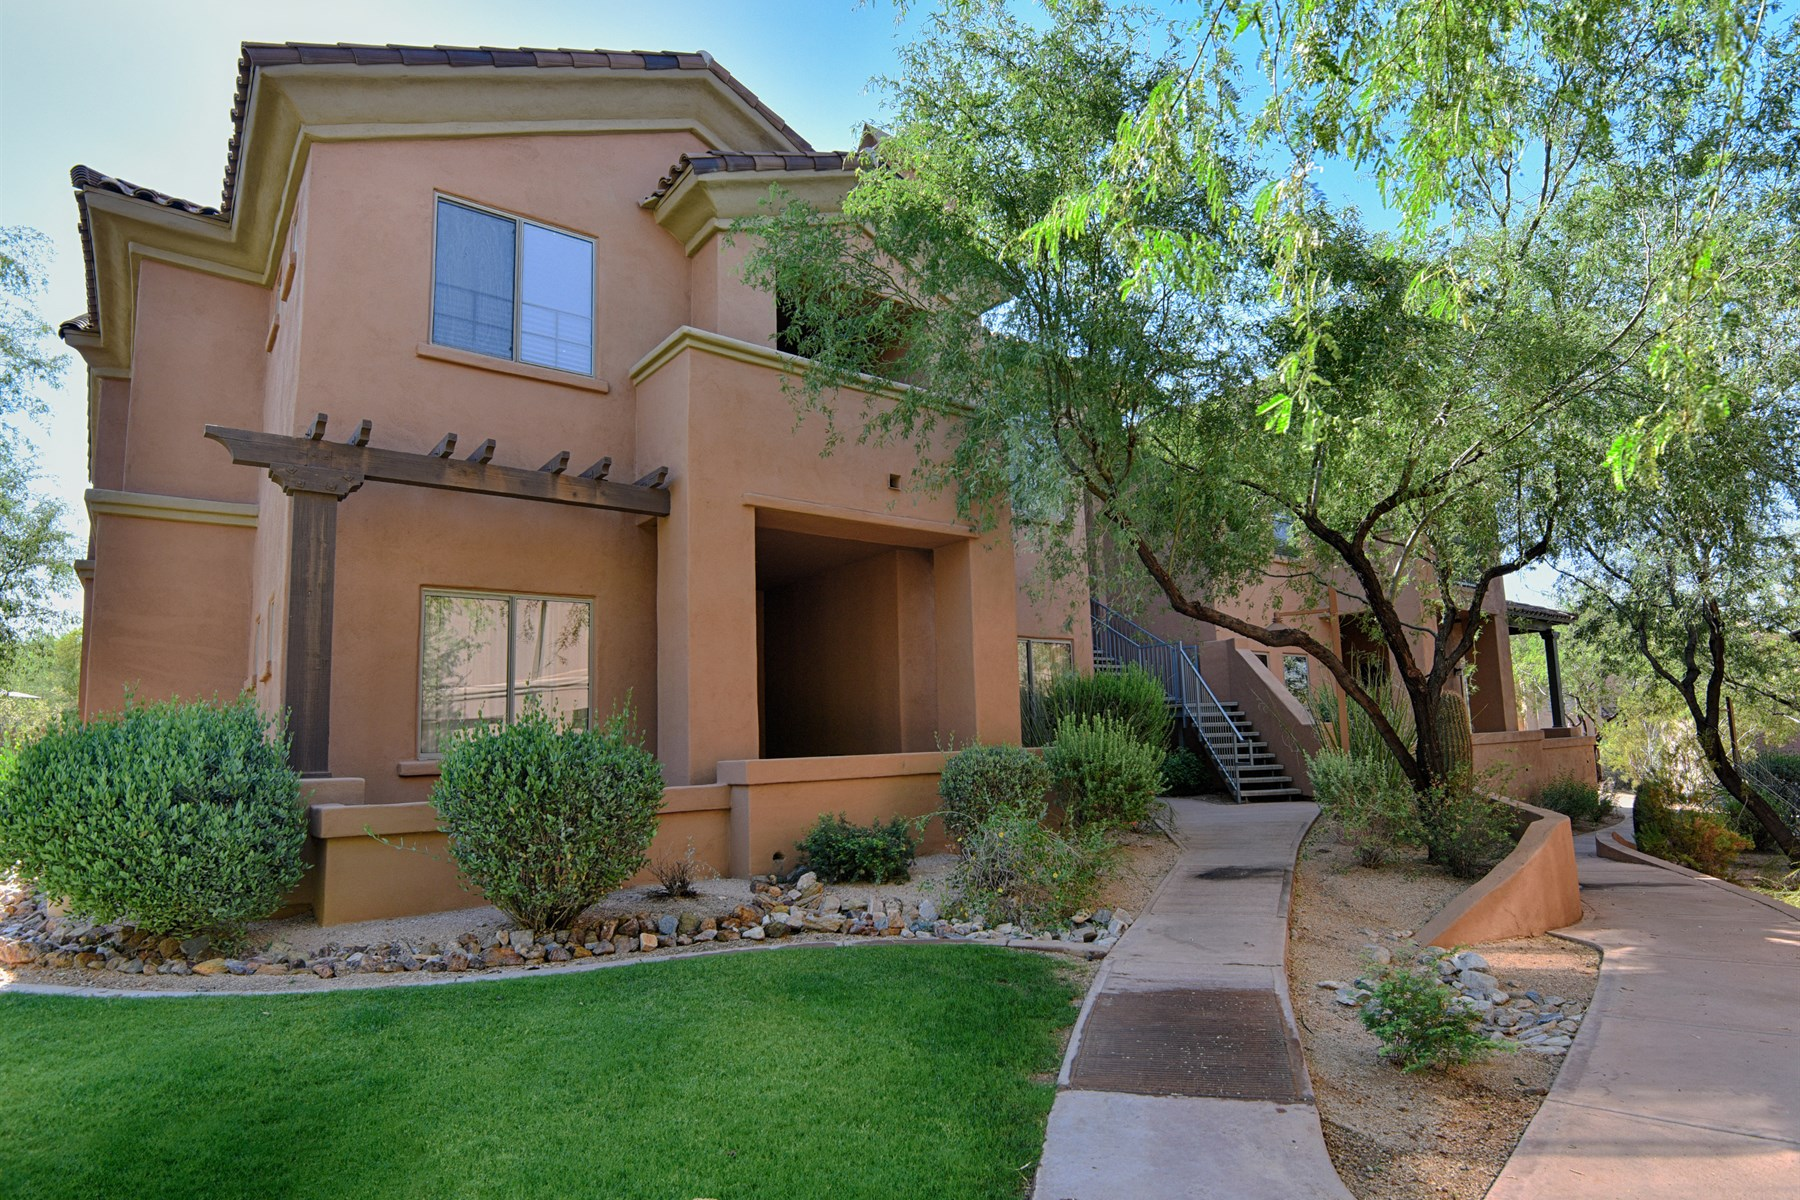 公寓 為 出售 在 Incredible buy in DC Ranch 20801 N 90TH PL Unit 139 Scottsdale, 亞利桑那州, 85255 美國